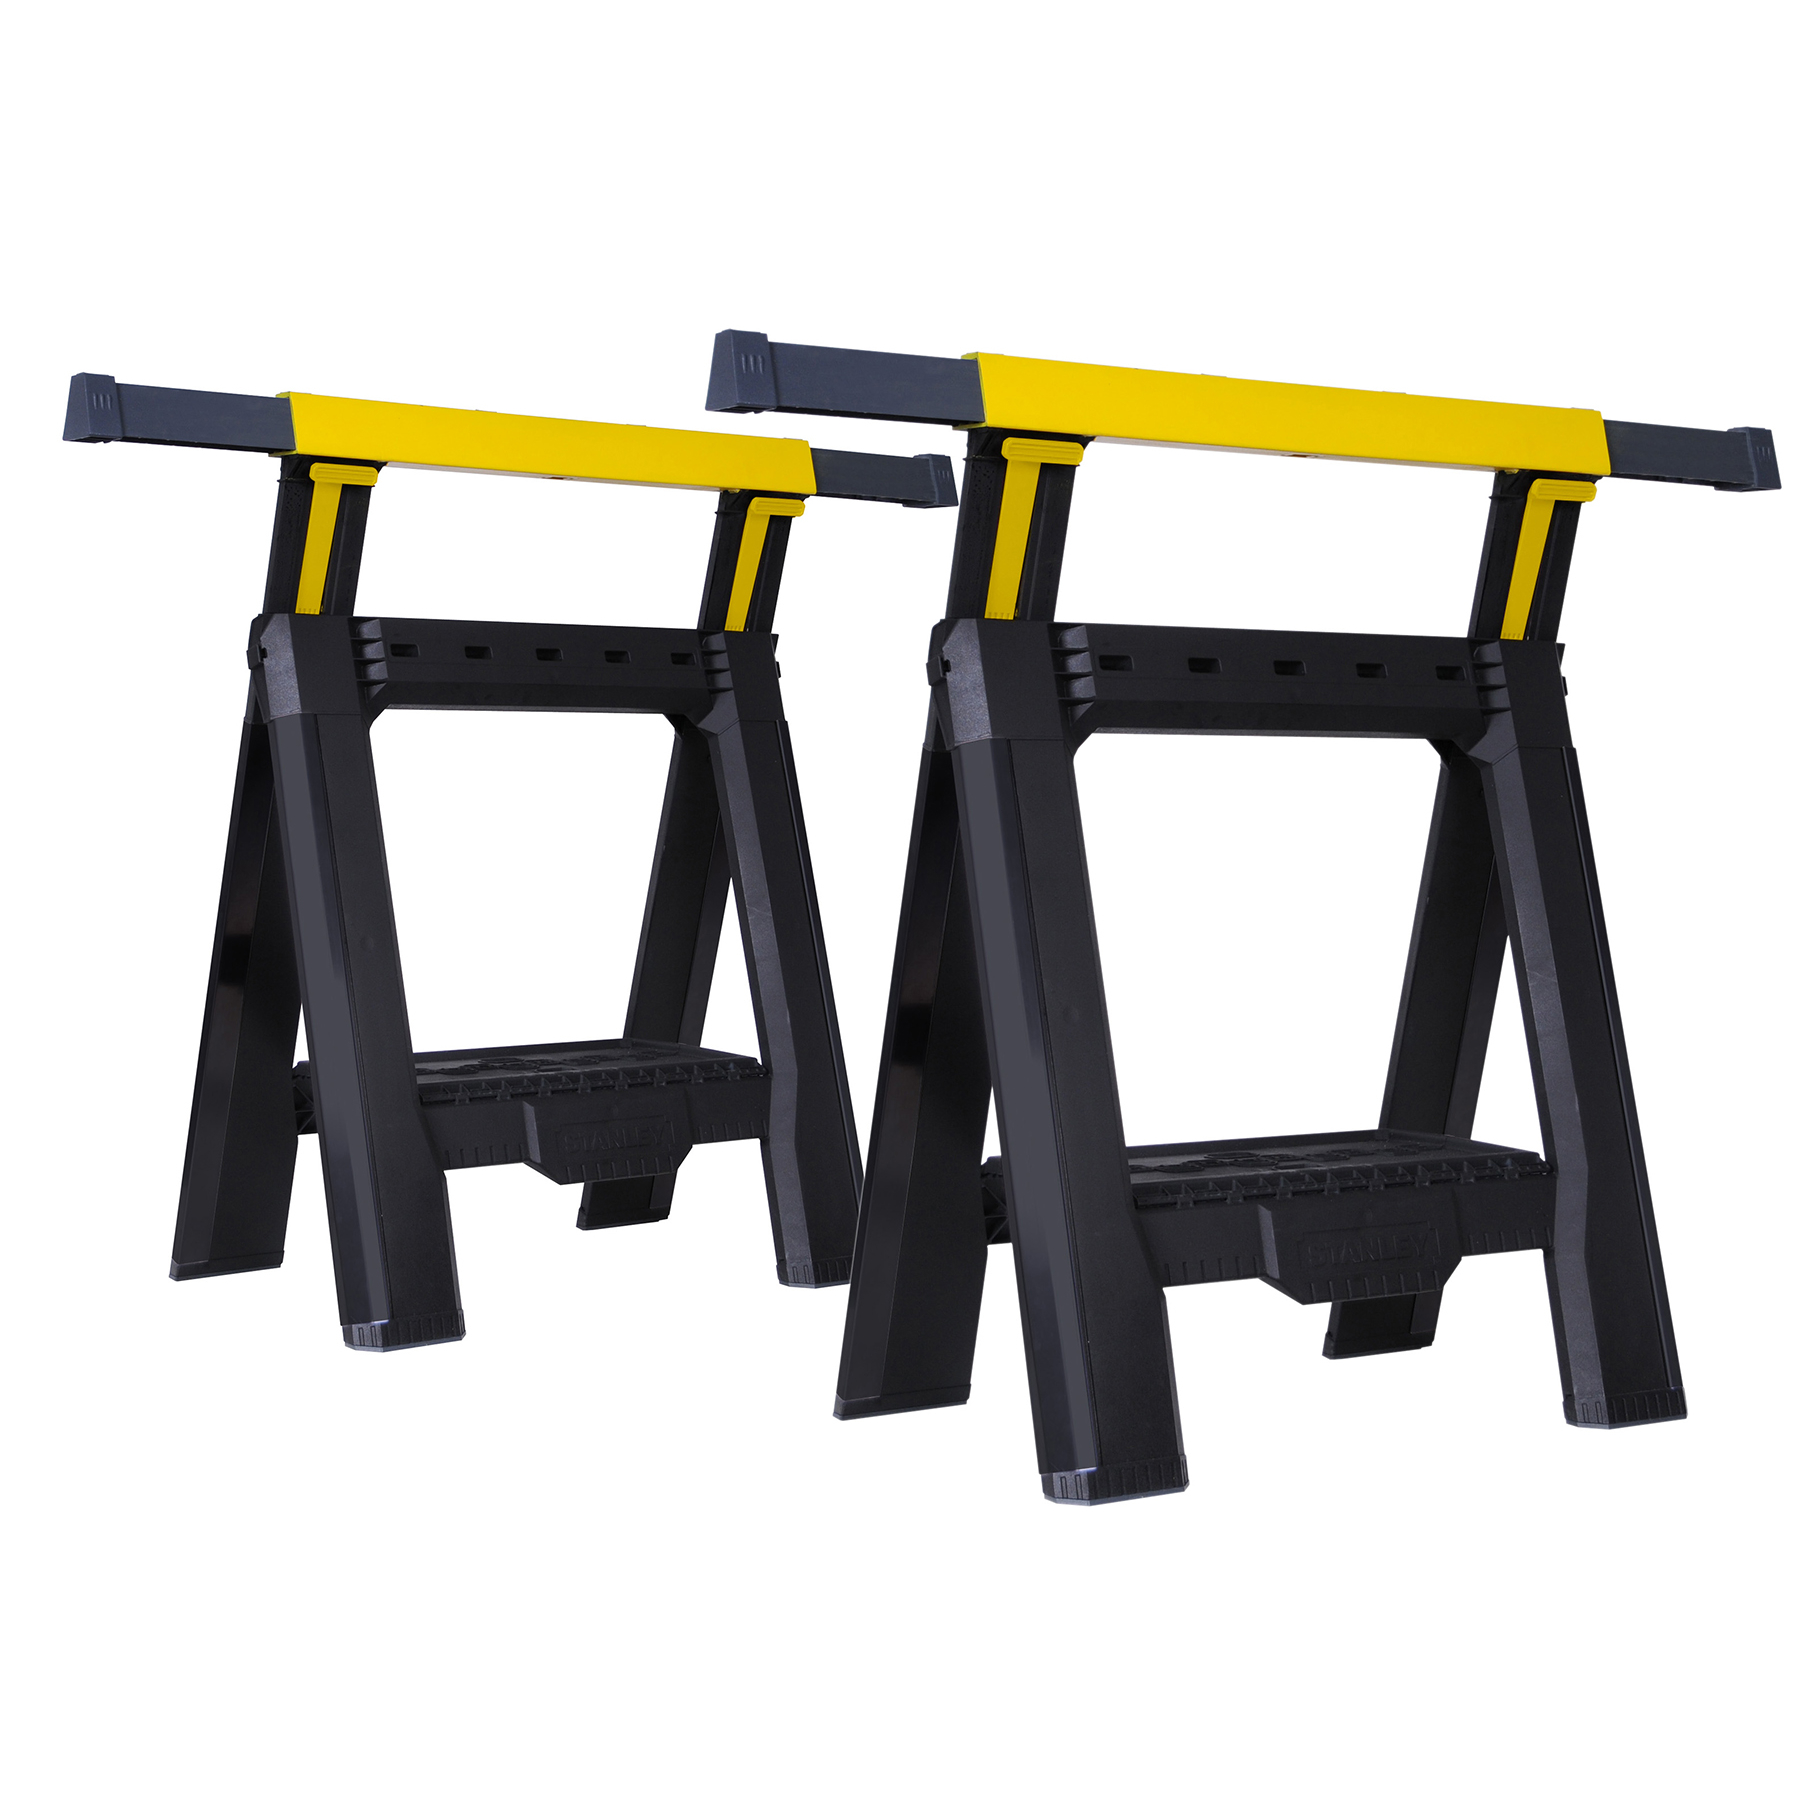 Stanley STST60626 Adjustable Sawhorses 2 Count